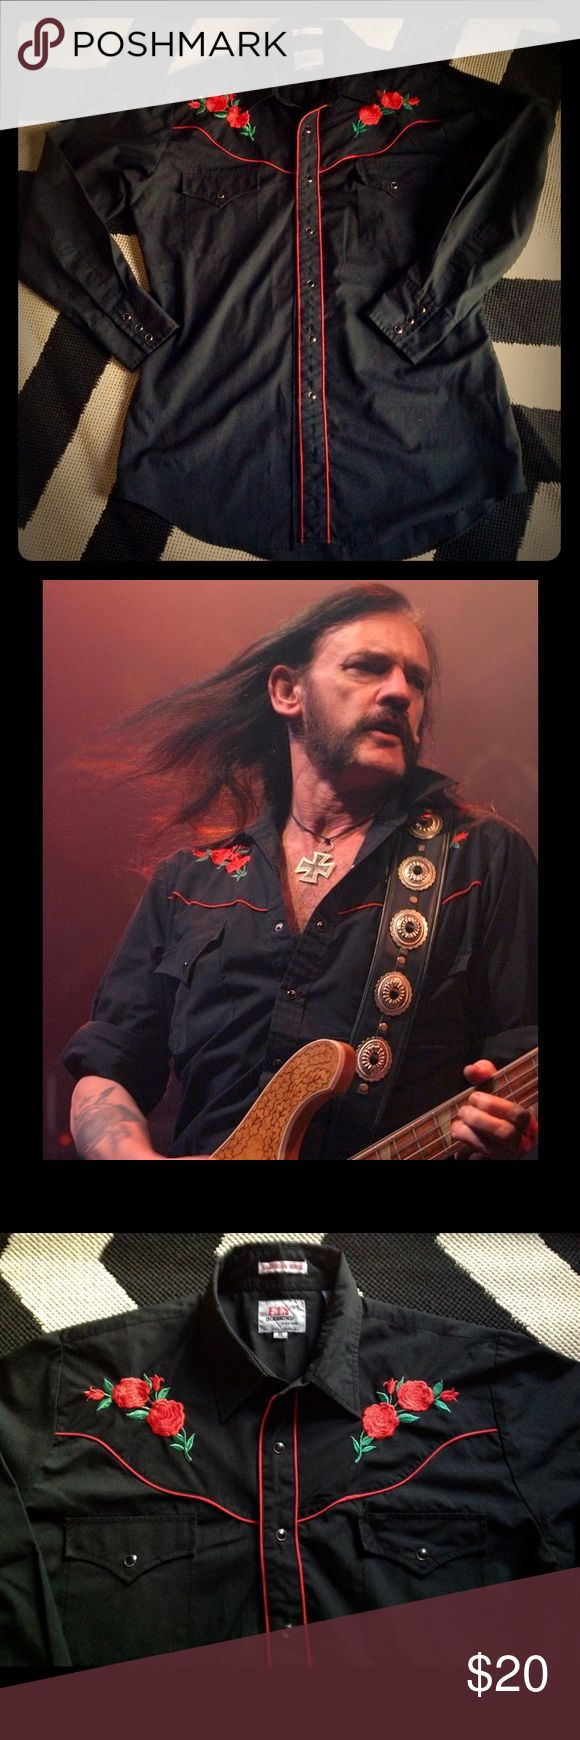 """Ely Diamond """"American Rose"""" Rockabilly Shirt Classic Cowboy Western Rockabilly Vintage Style Black with Embroidered Red Rose's Shirt with Black Pearl Snaps Dating Back to 1980's Signature look by Motorhead's Late Great Lemmy Kilmister Ely Diamond Tops Button Down Shirts"""